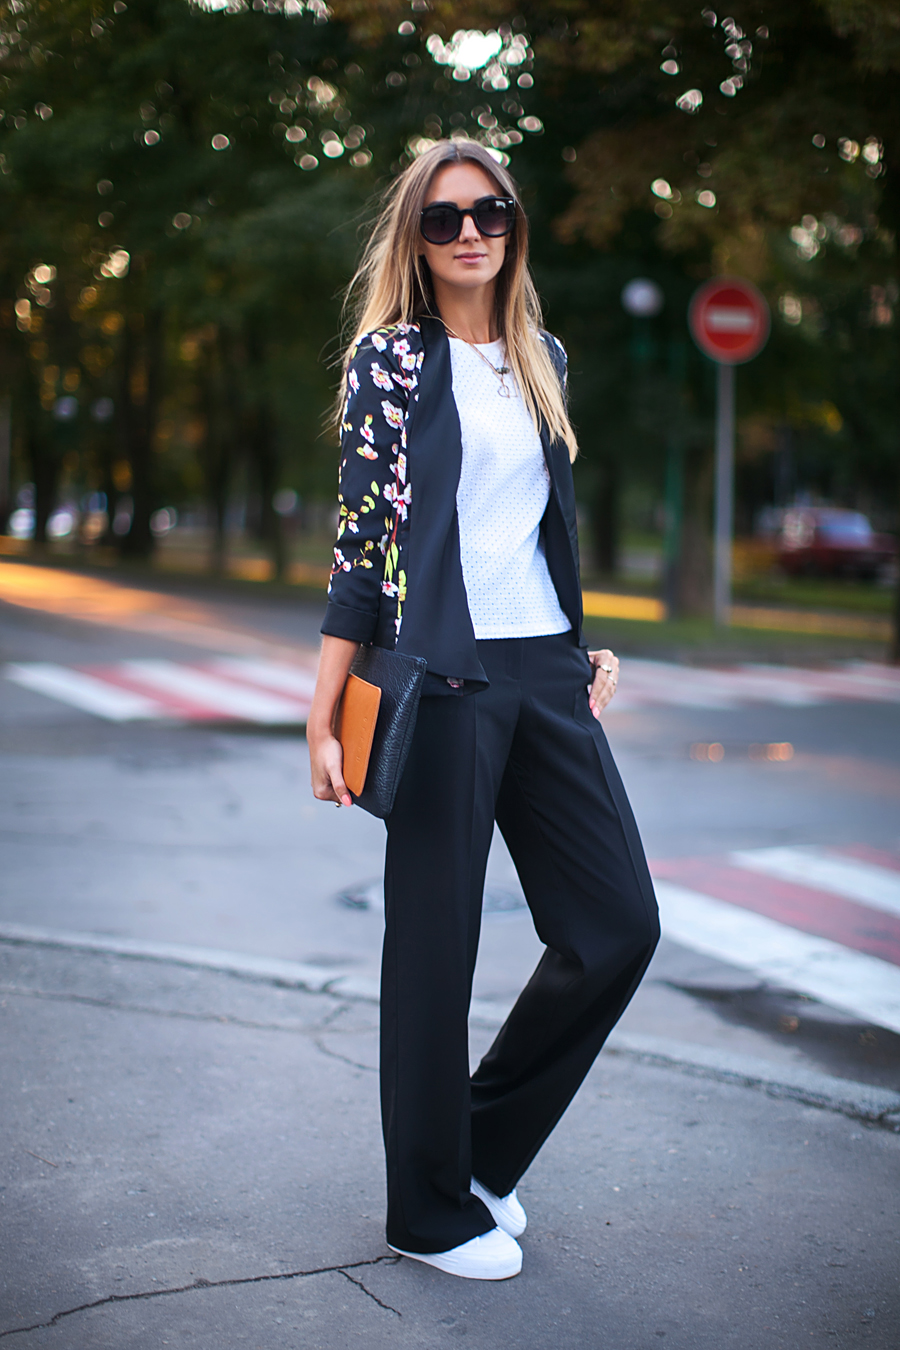 Floral Fashion Trend, Spring/Summer 2014 - Just The Design